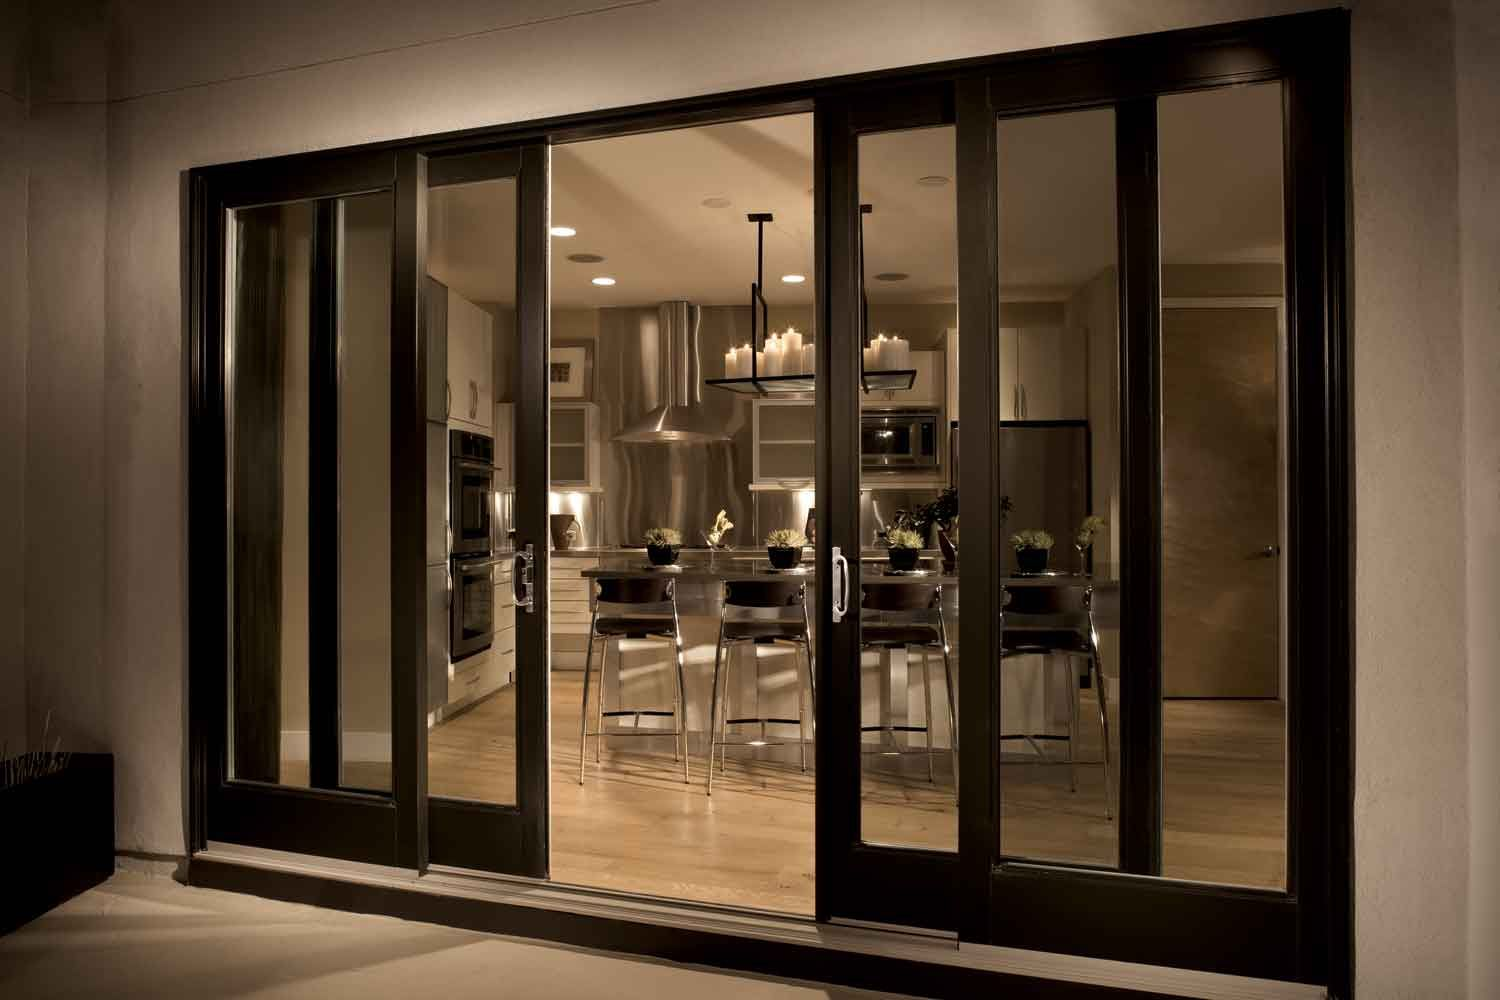 Google Image Result For Http Www Hendersonanddaughter Com Largepics Patio Door 4 Jpg Glass Doors Patio Sliding Doors Exterior Sliding Patio Doors